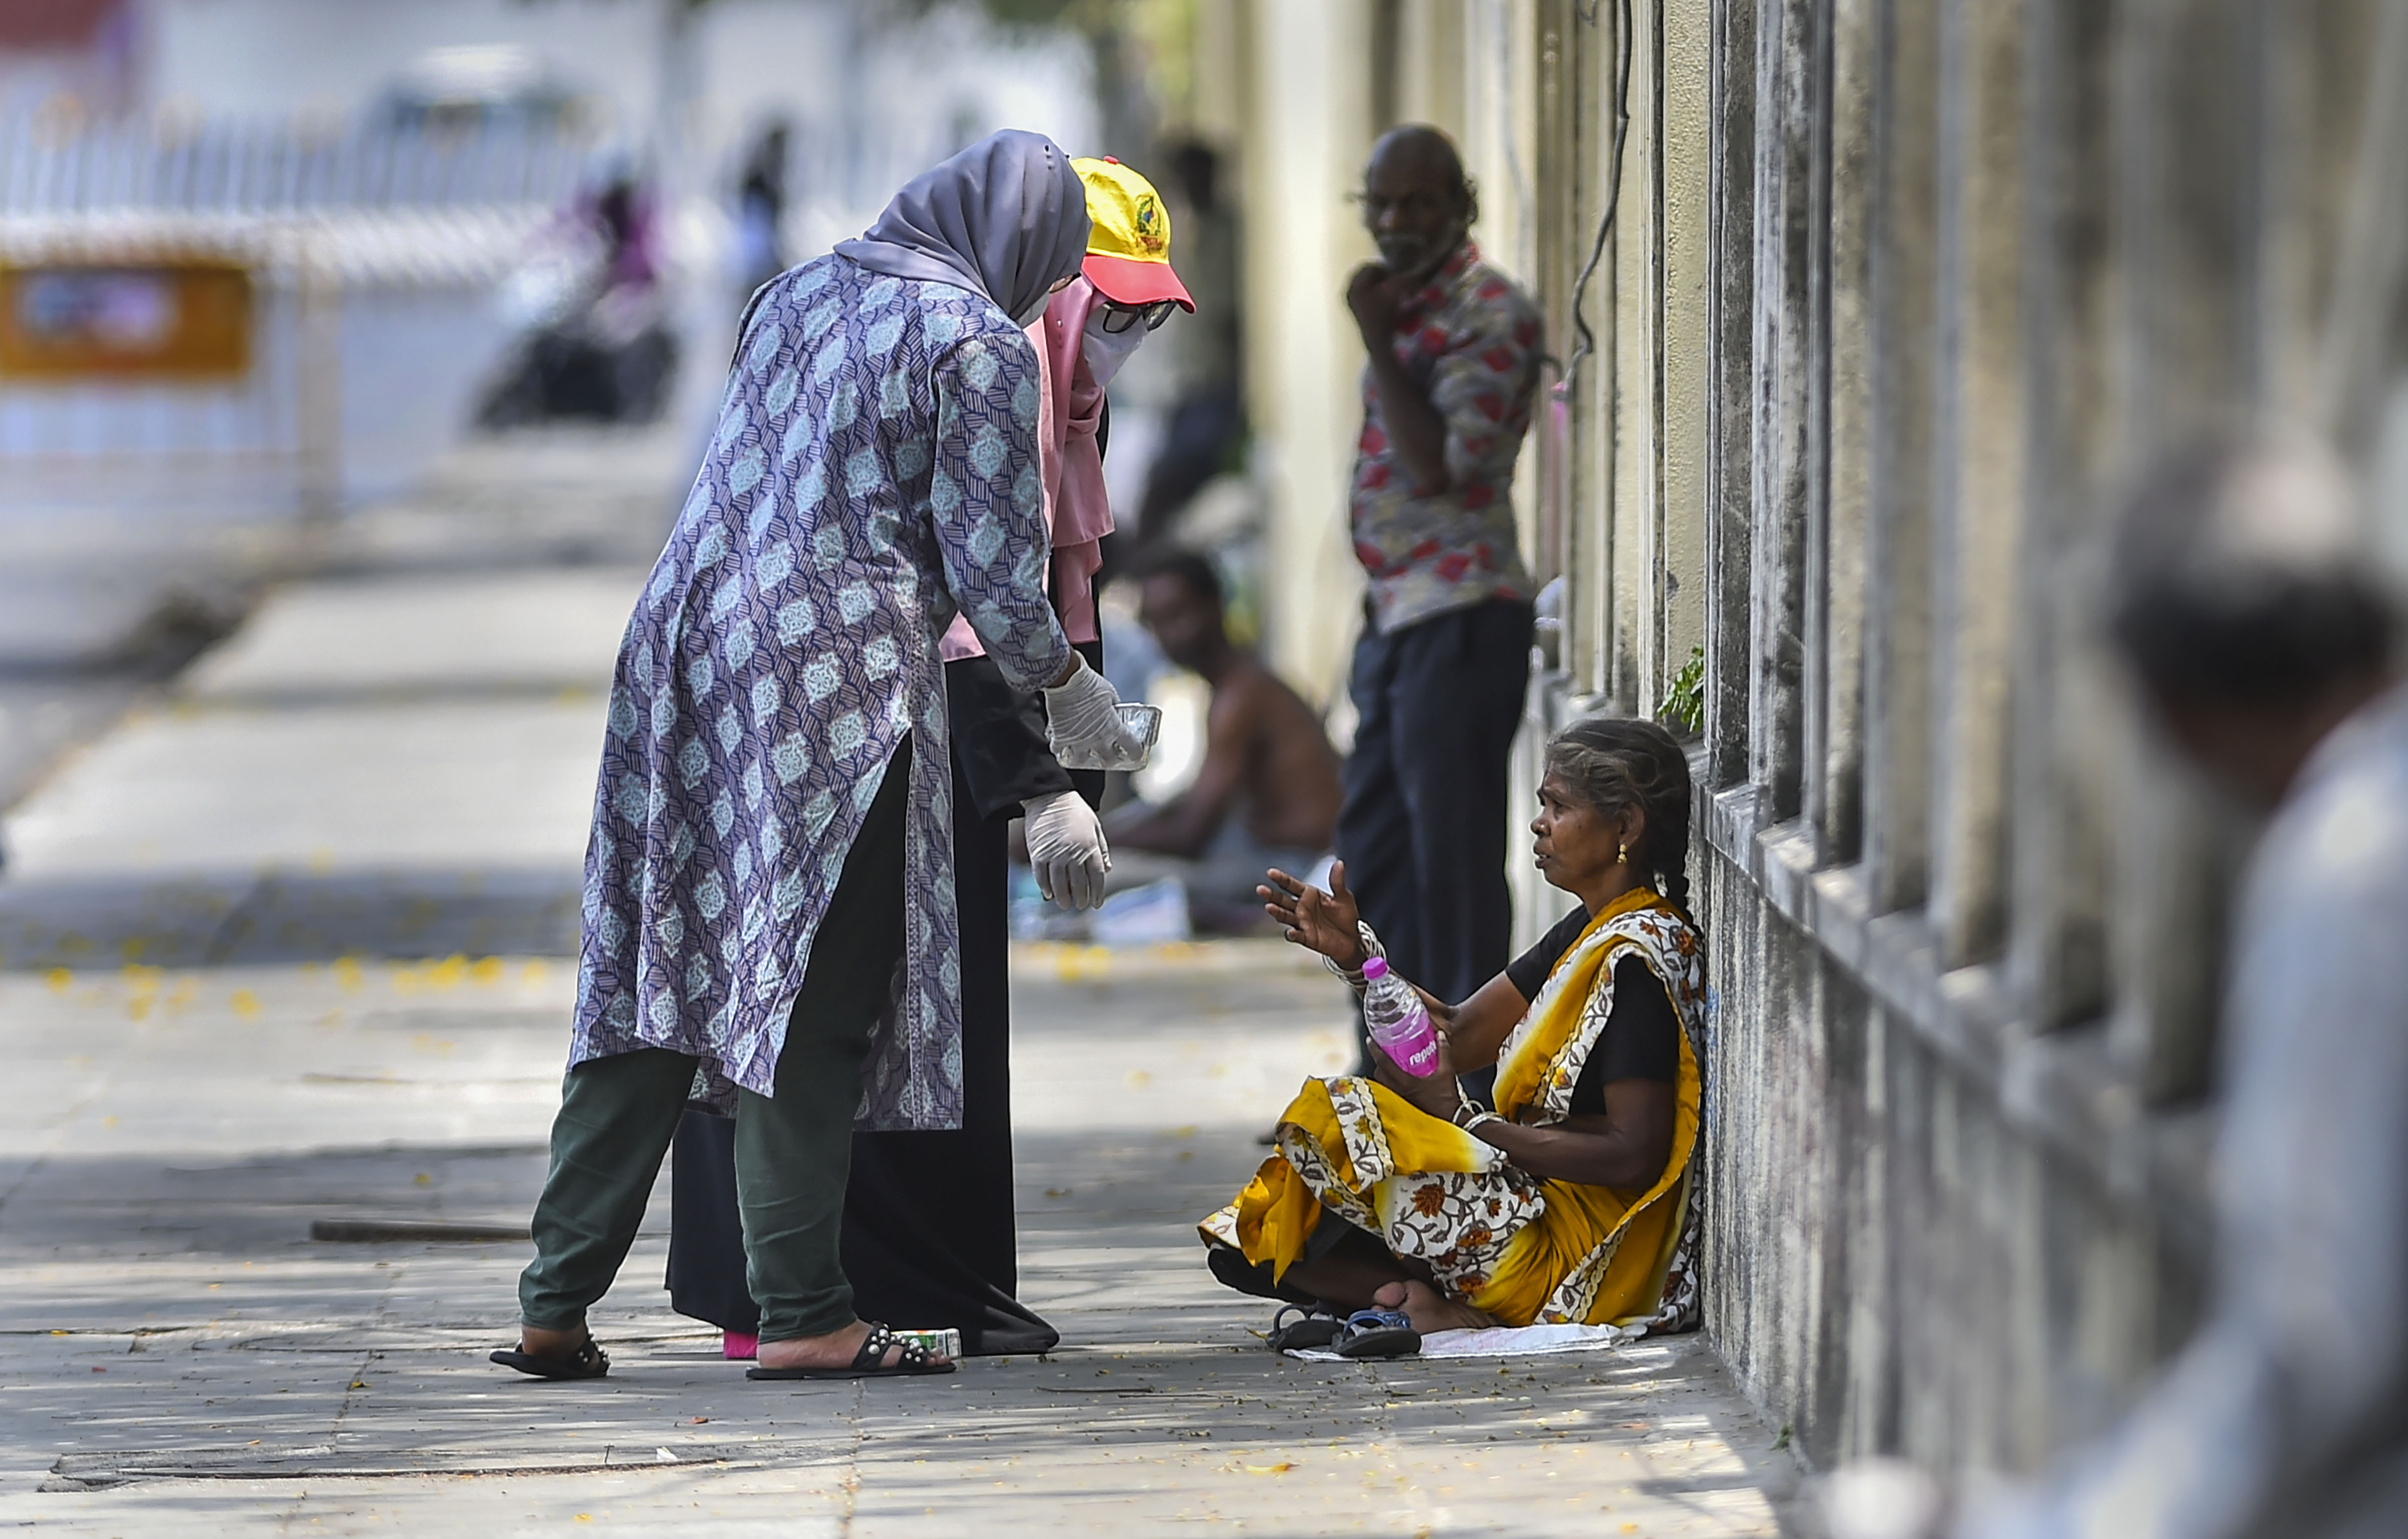 Two women offer food to a poor woman during the nationwide lockdown imposed to contain the spread of the COVID-19. (PTI Photo)